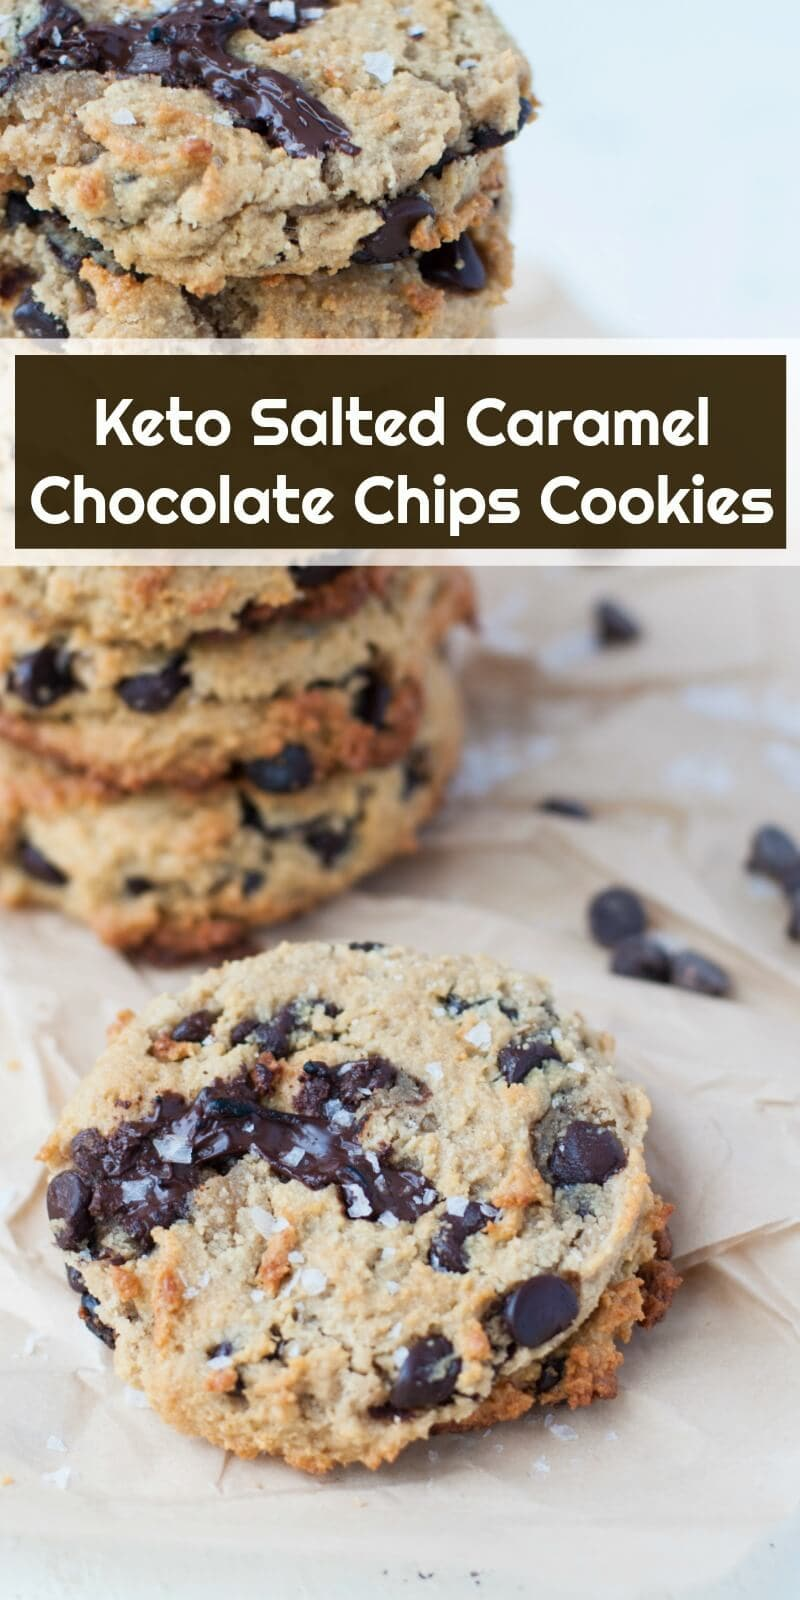 Keto Salted Caramel Chocolate Chip Cookies | Peace Love and Low Carb#keto #ketogenic #lowcarb #cookies #glutenfree #sugarfree